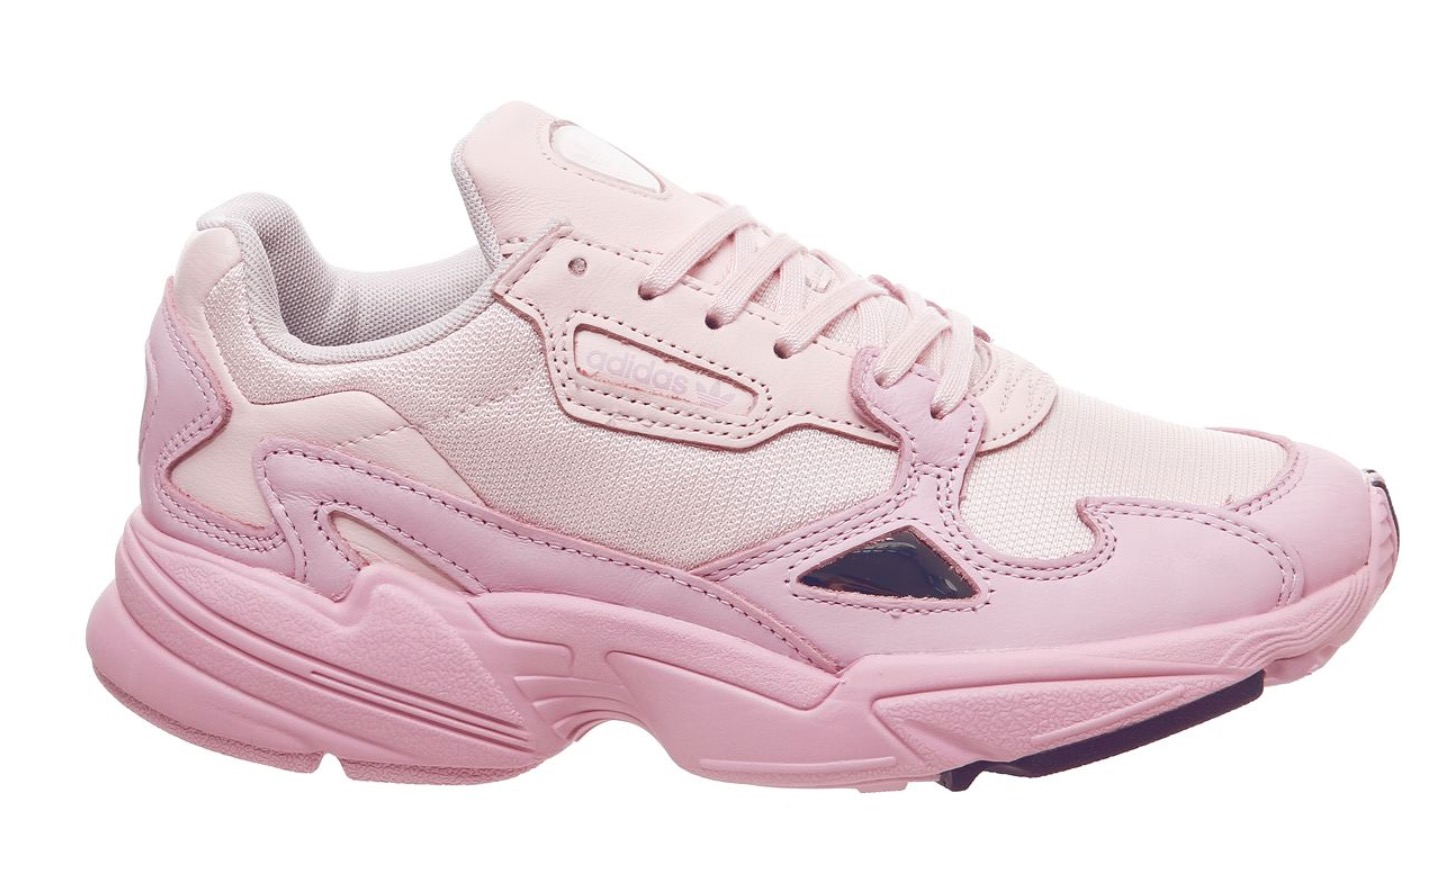 adidas Falcon Icey Pink